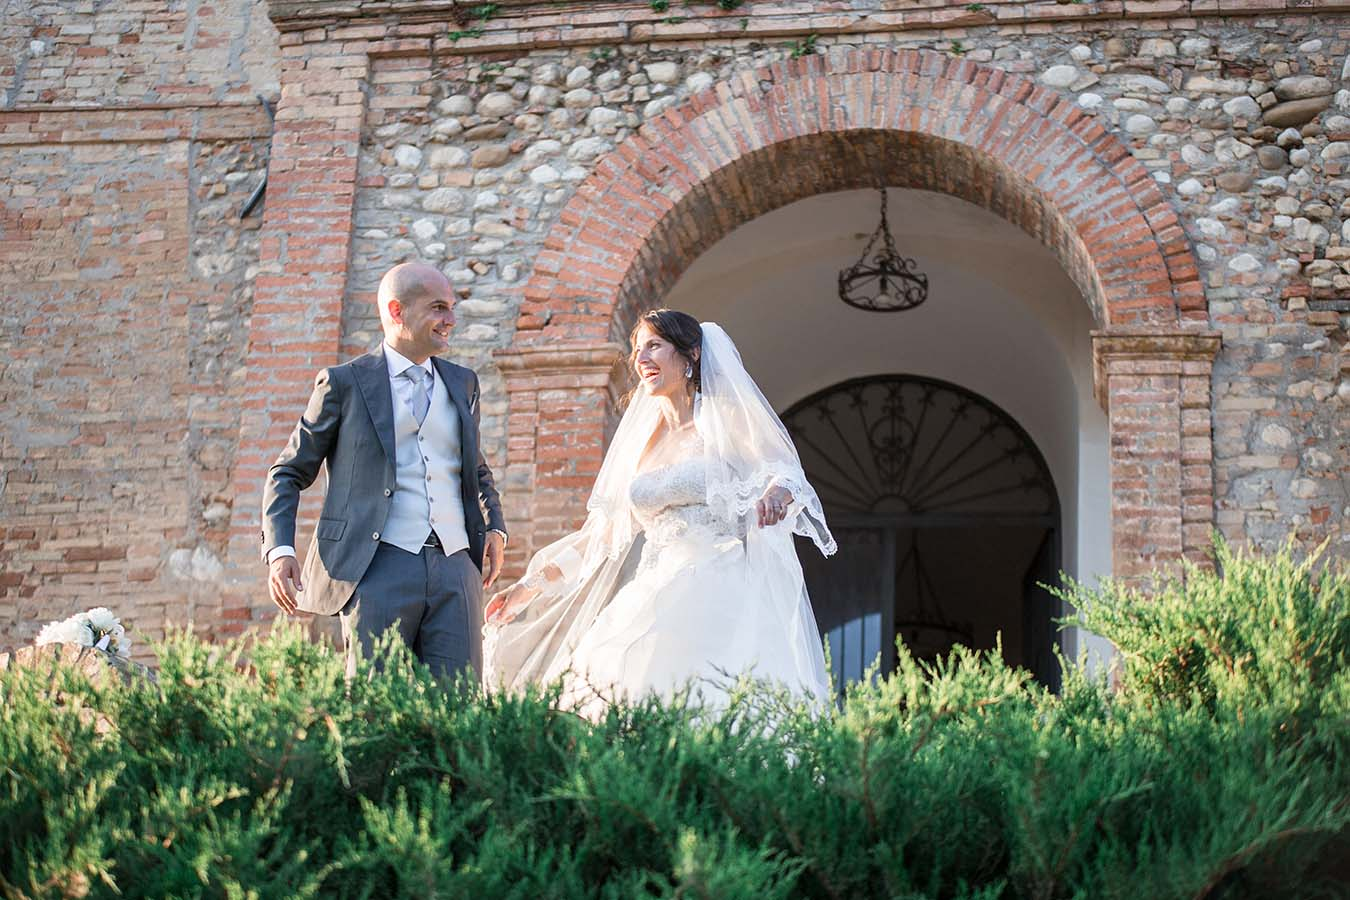 Alfresco Italian Wedding in Abruzzo